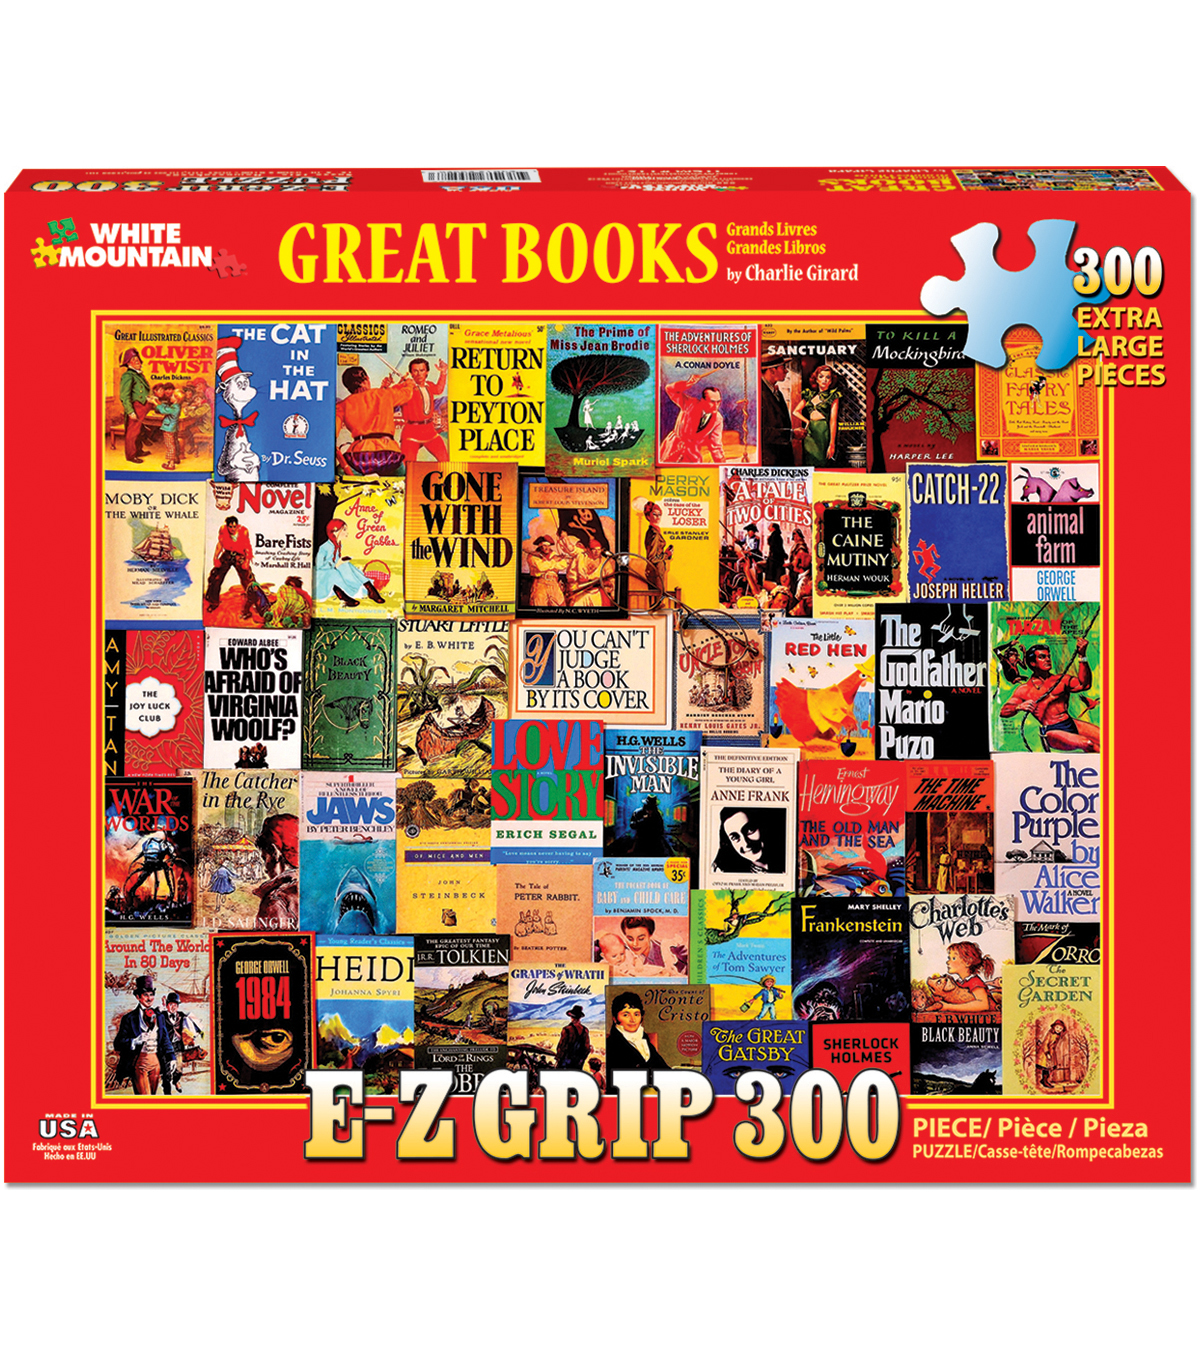 White Mountain Puzzles 300 Pieces 24\u0027\u0027x30\u0027\u0027 Jigsaw Puzzle-Great Books